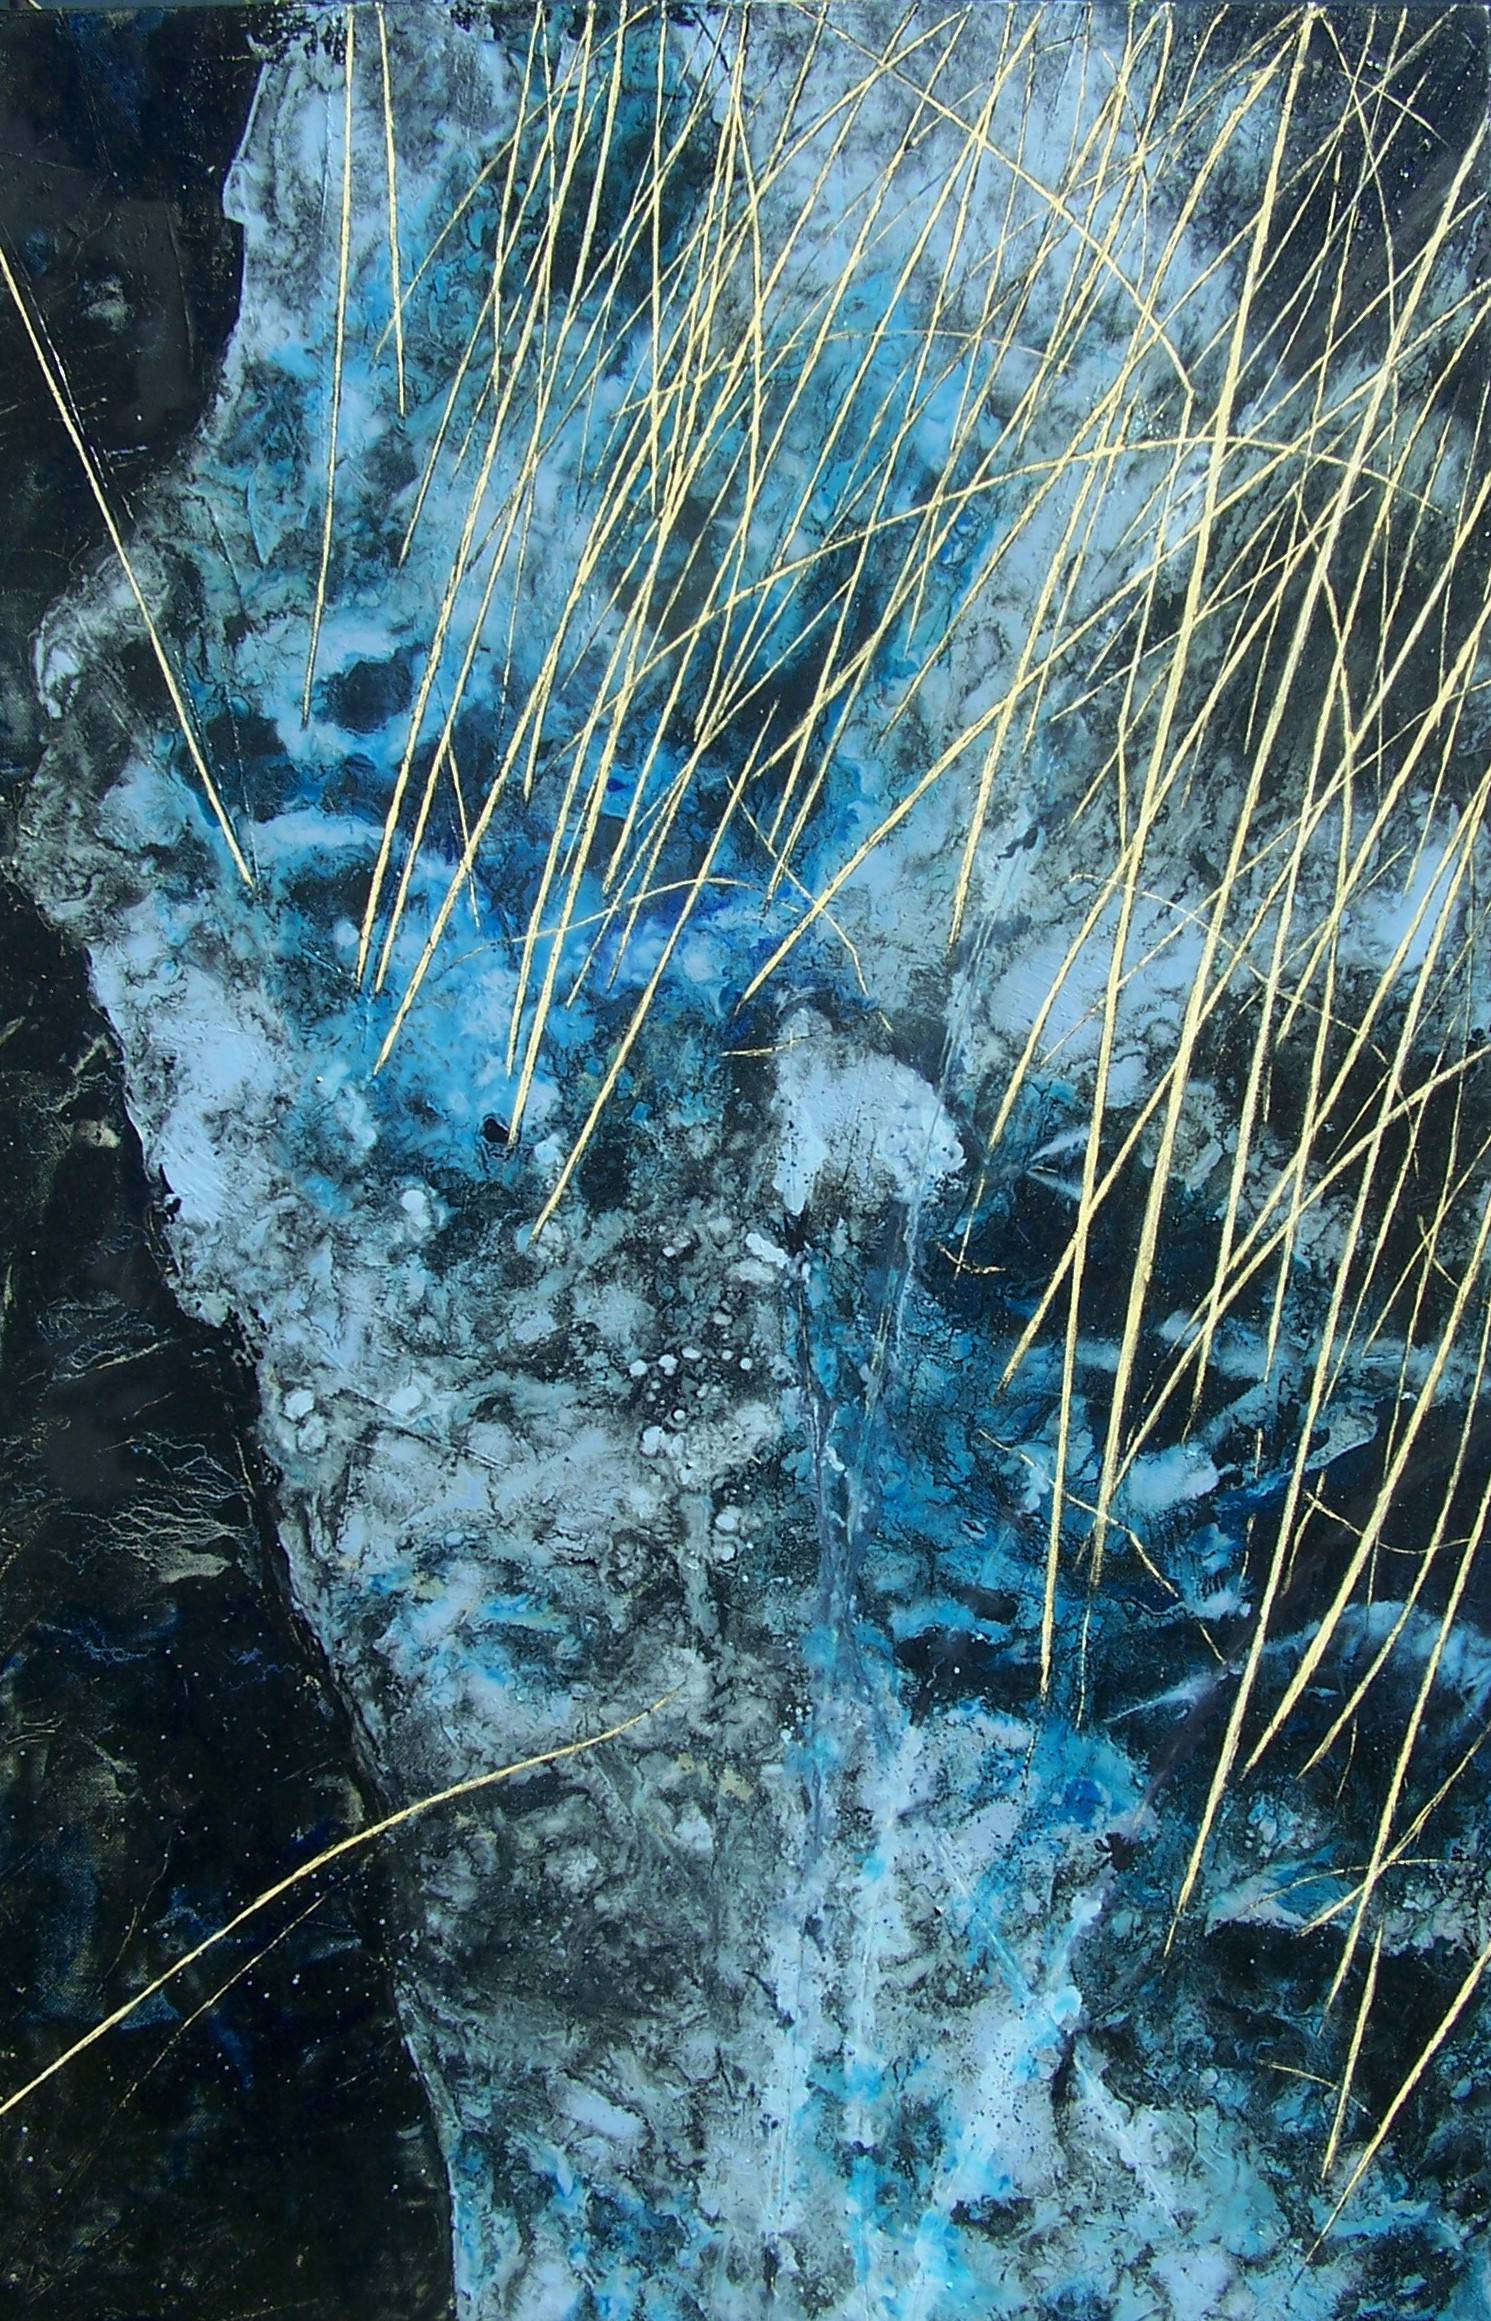 Frozen Line, Winter Reeds. oil on canvas